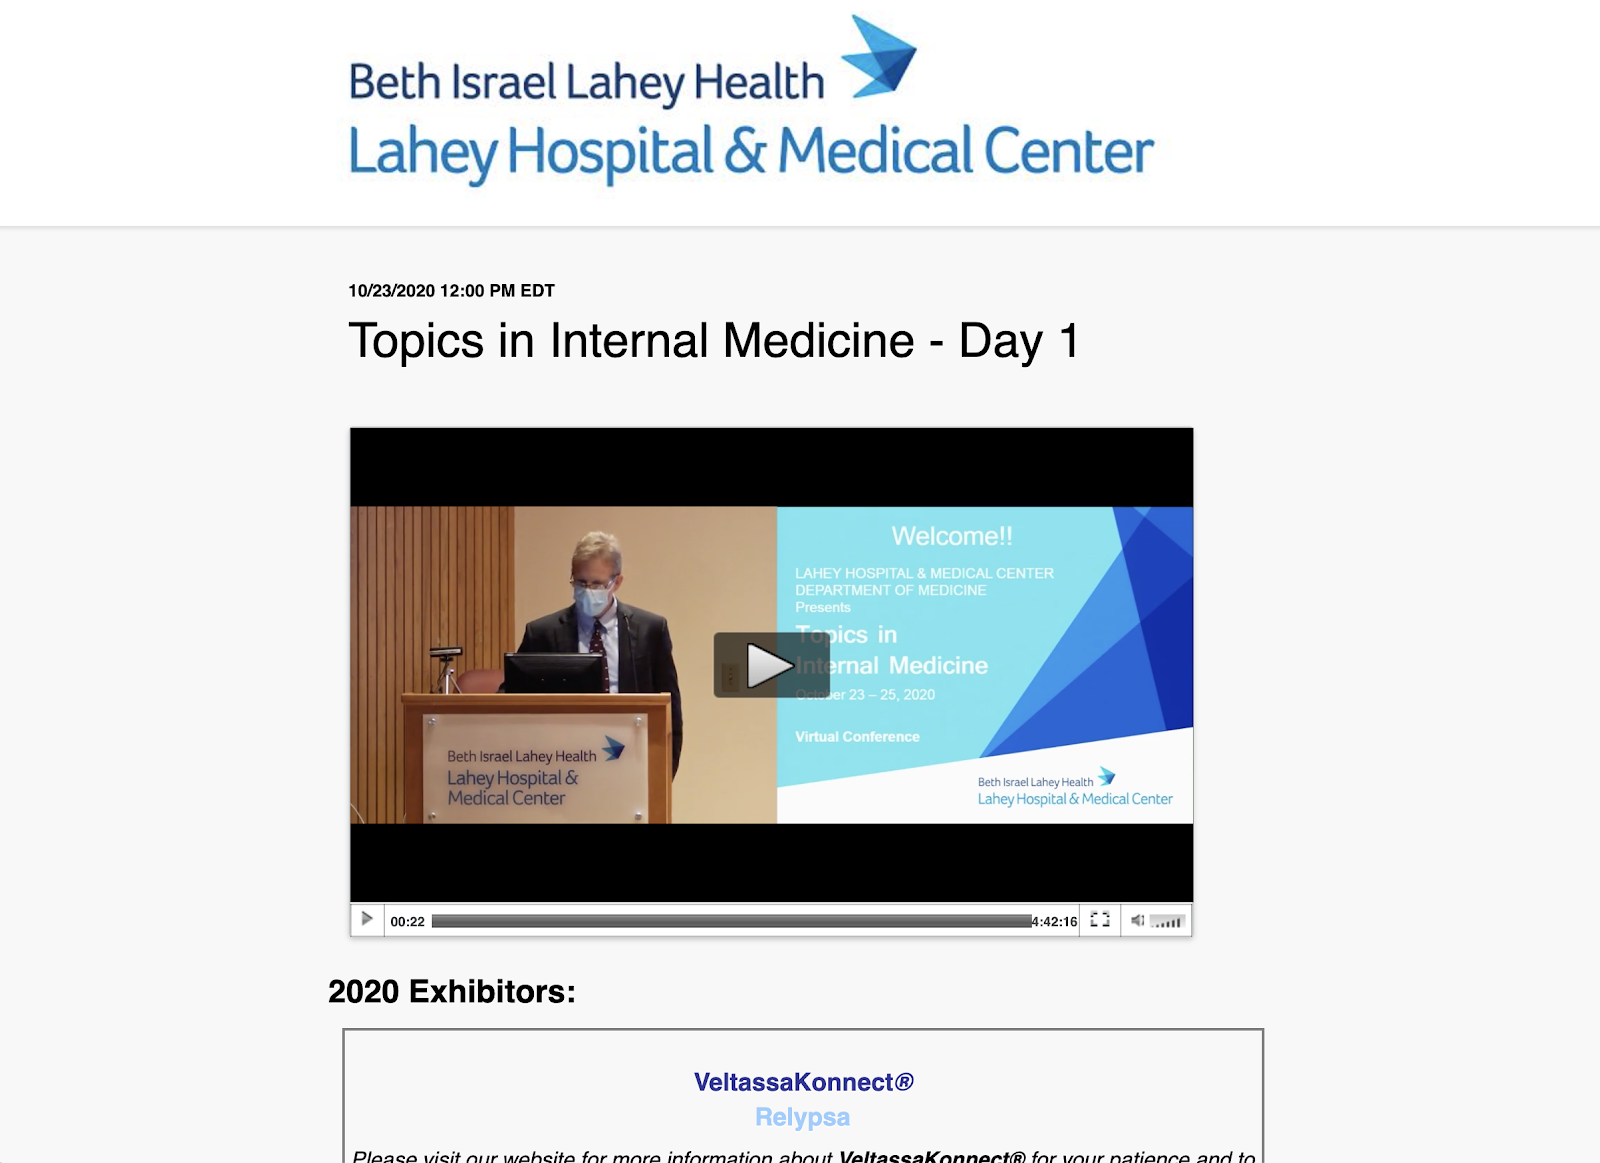 Lahey Hospital & Medical Health Center worked with BeaconLive to produce and deliver a Live, Multi-Day, CME Webcast experience for over 100 attendees.